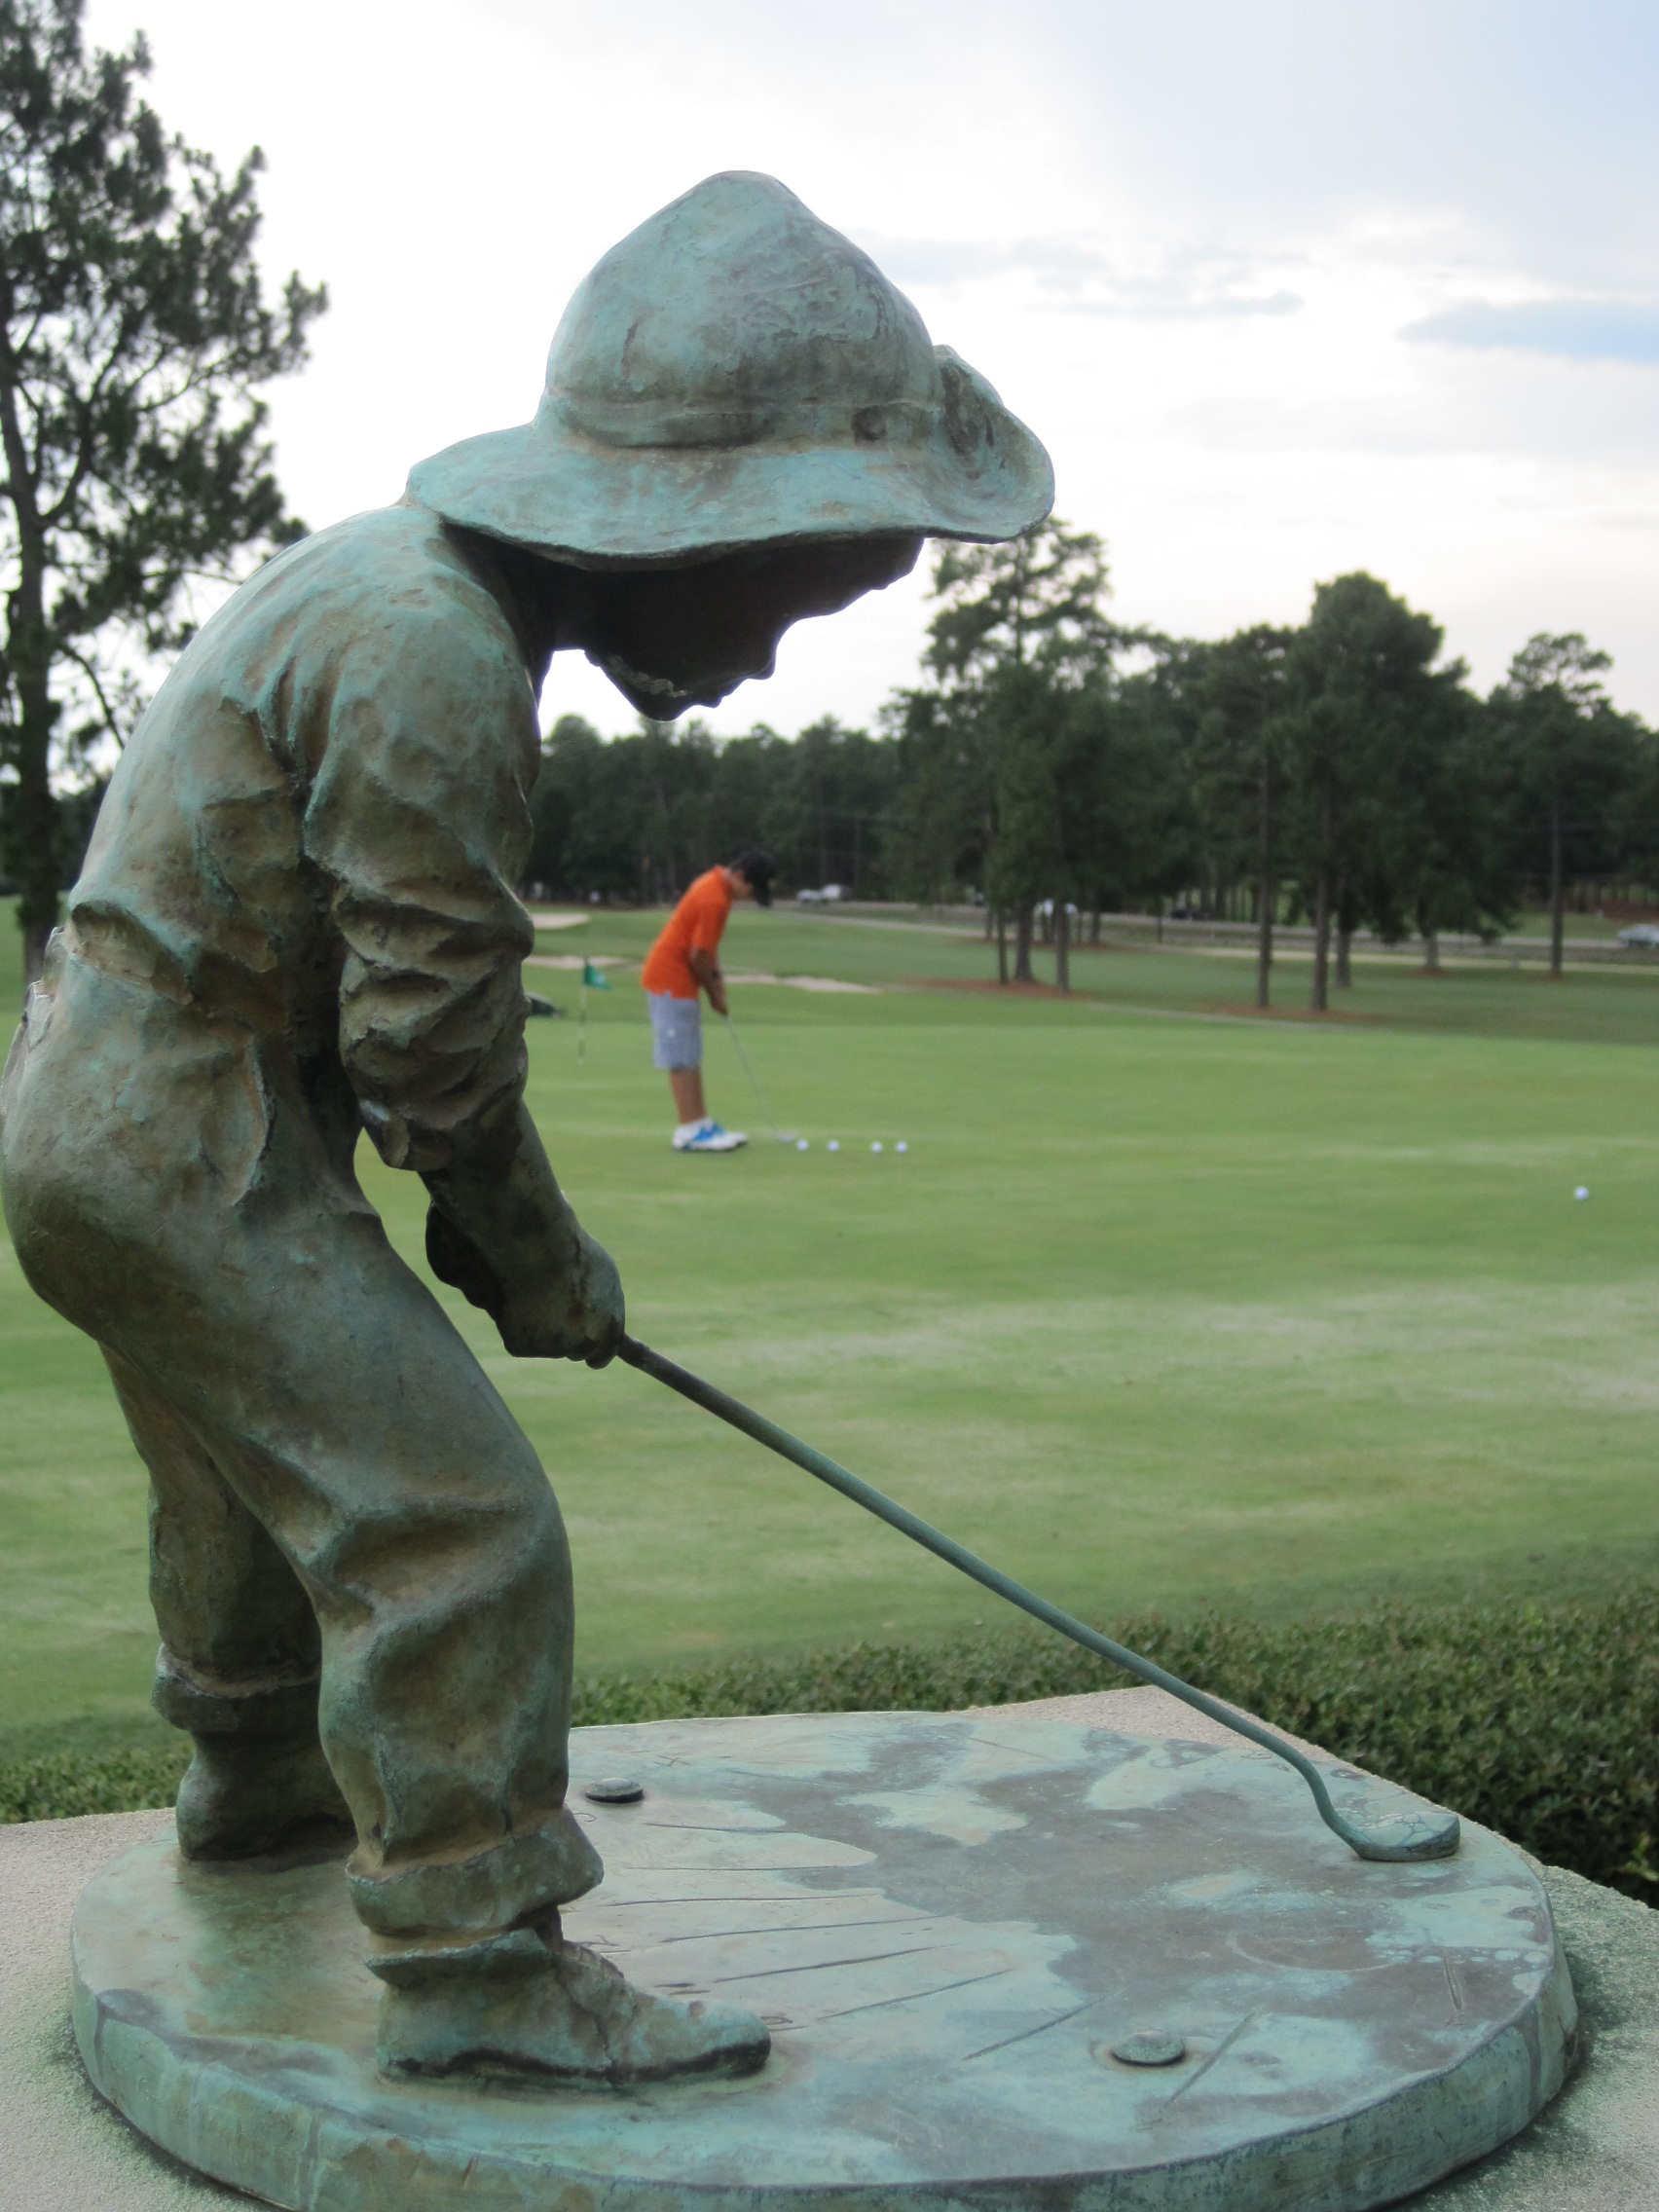 Pinehurst Putter Boy U.S. Kids